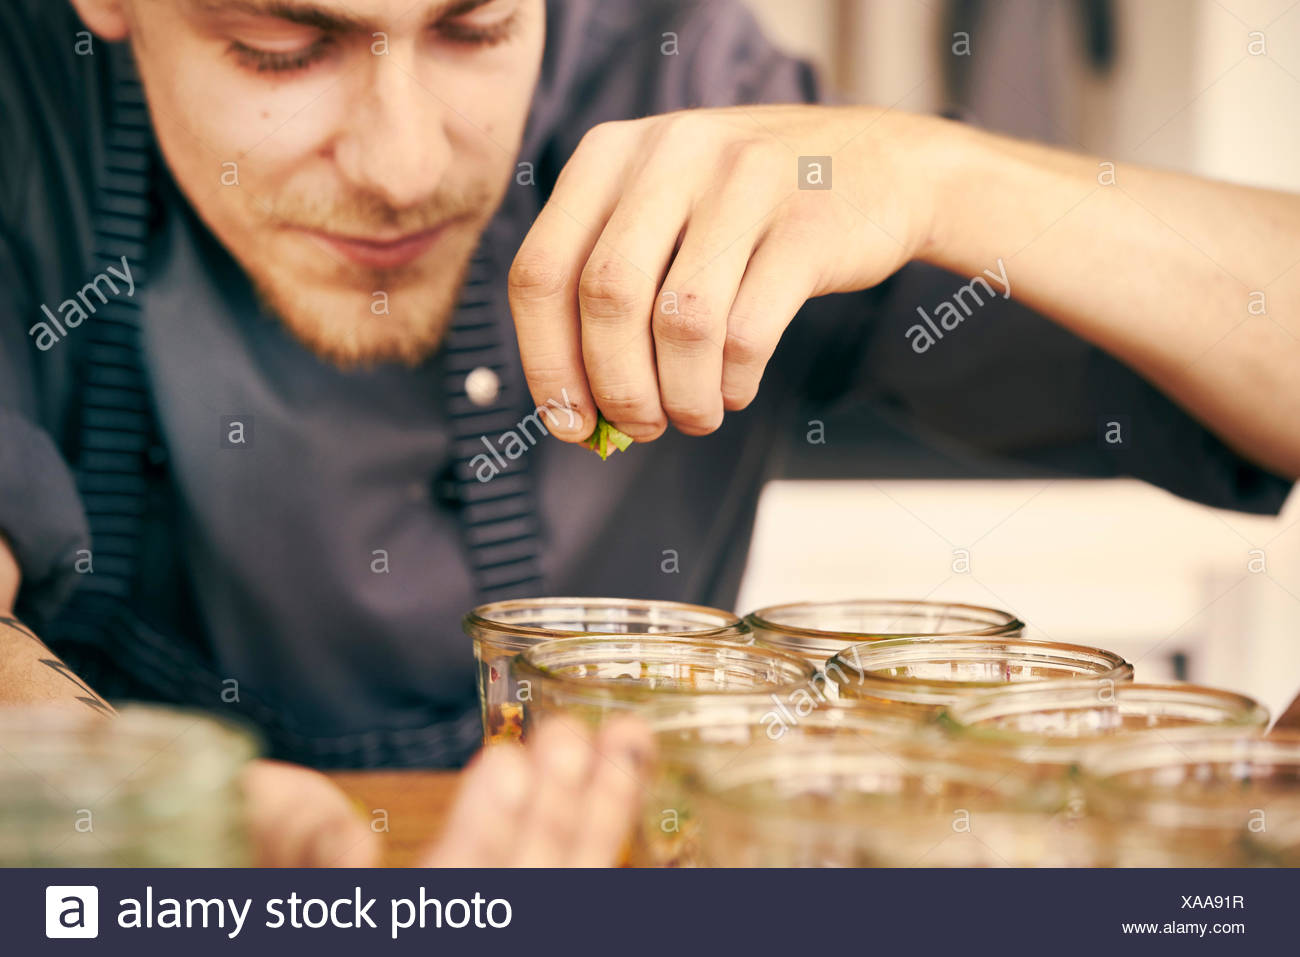 Chef seasoning food in plastic containers - Stock Image